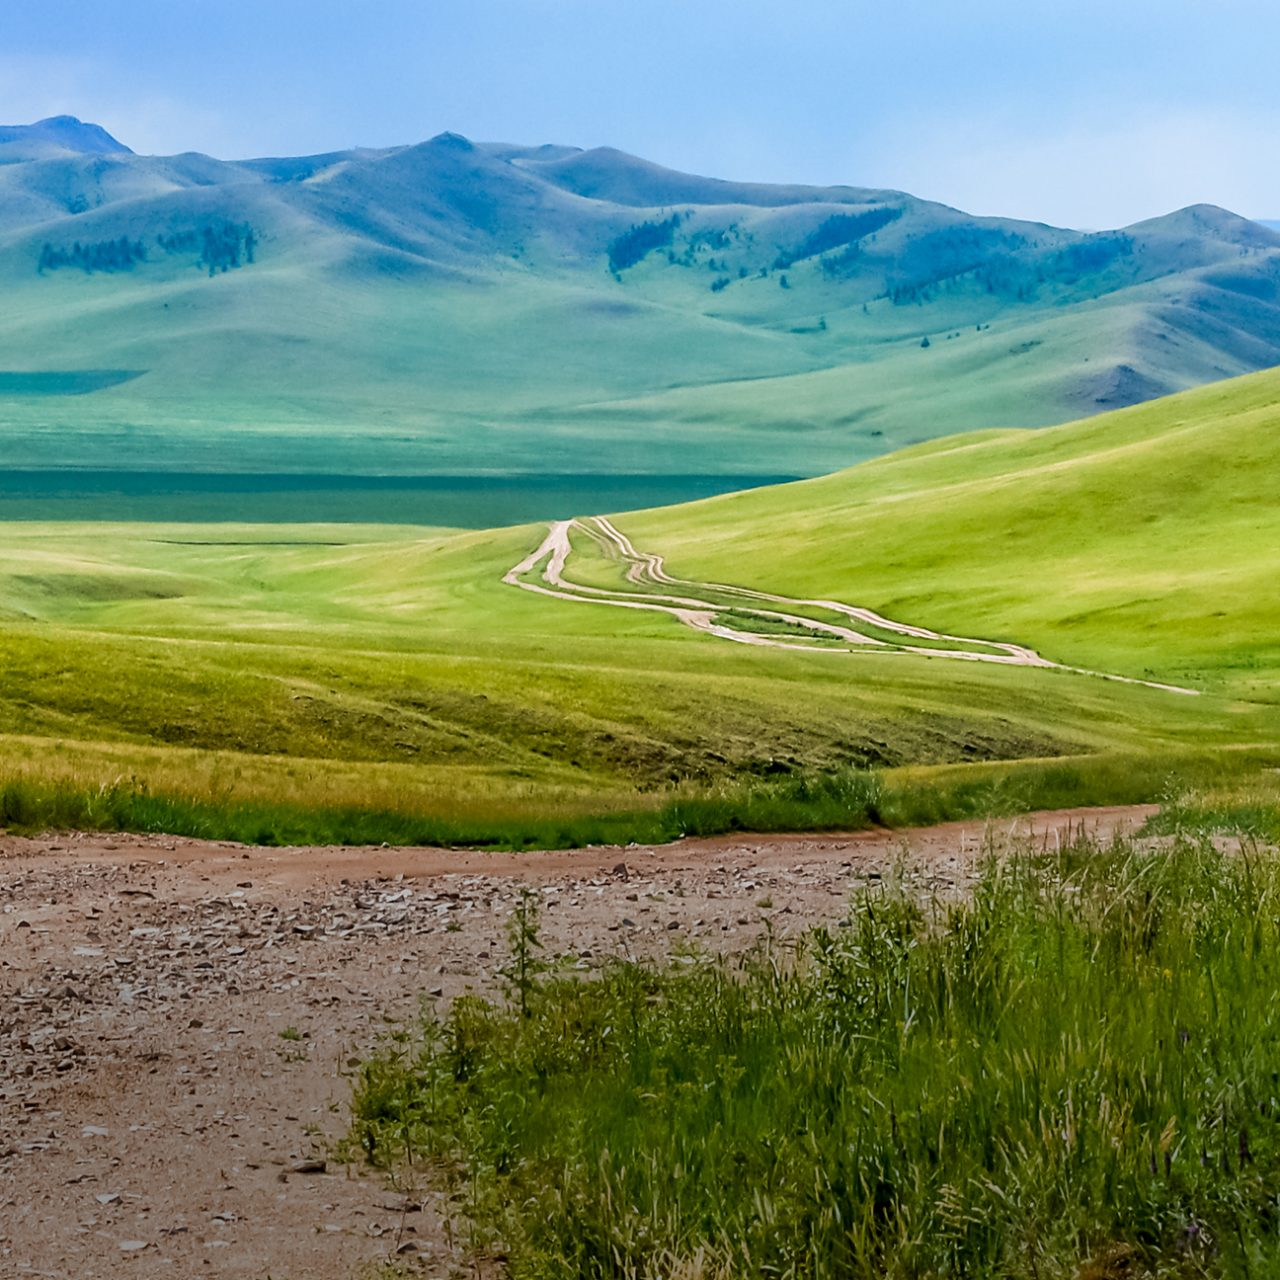 Winding dirt track through lush rolling hills of central Mongolian steppe